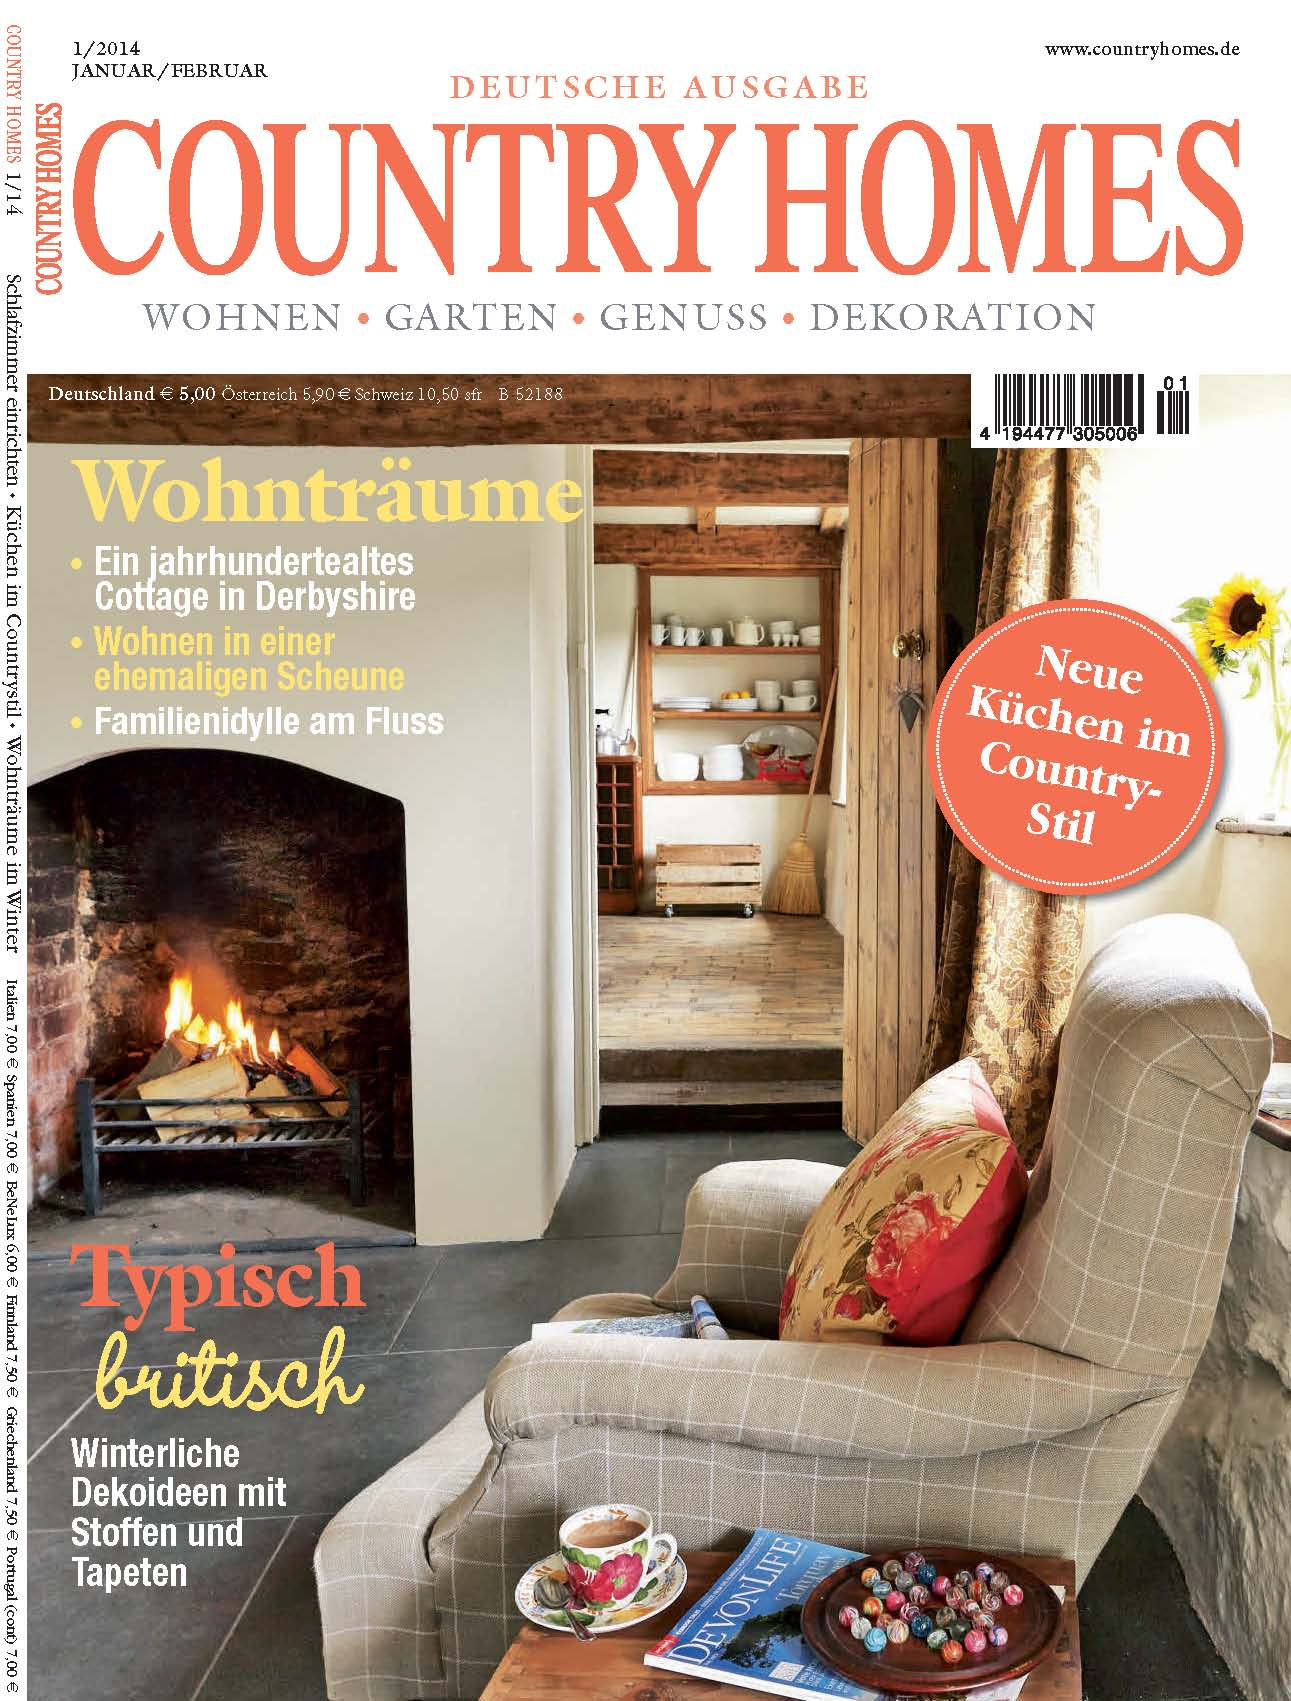 country_homes_1-14-cover